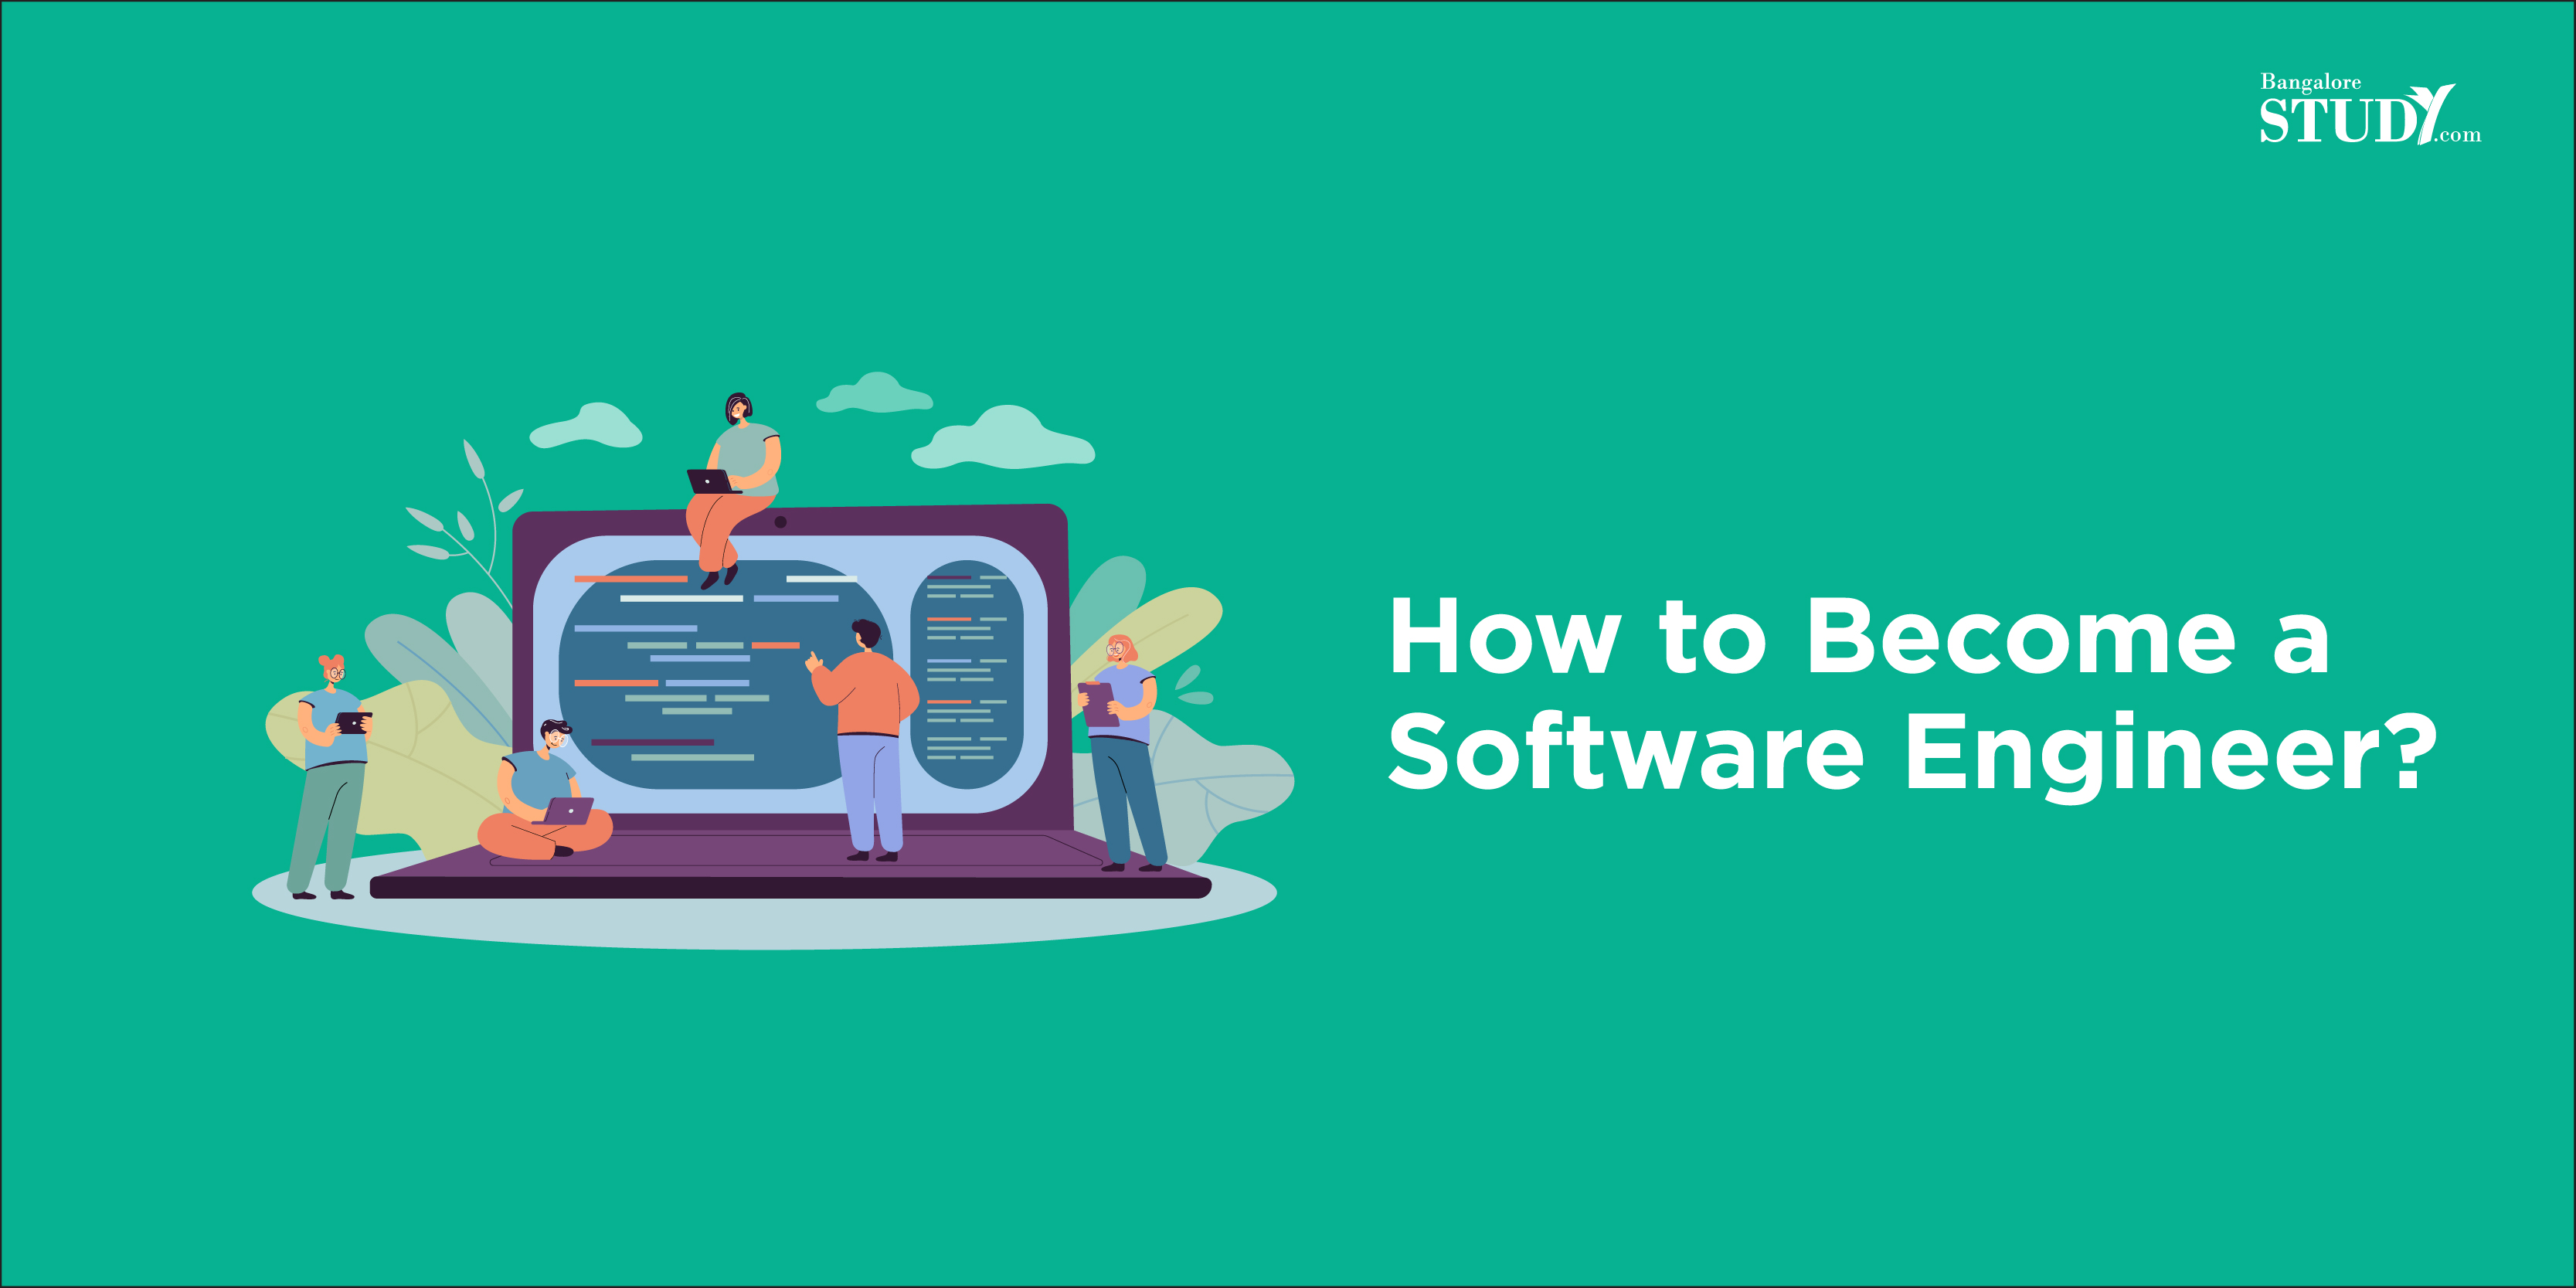 How to Become a Software Engineer?